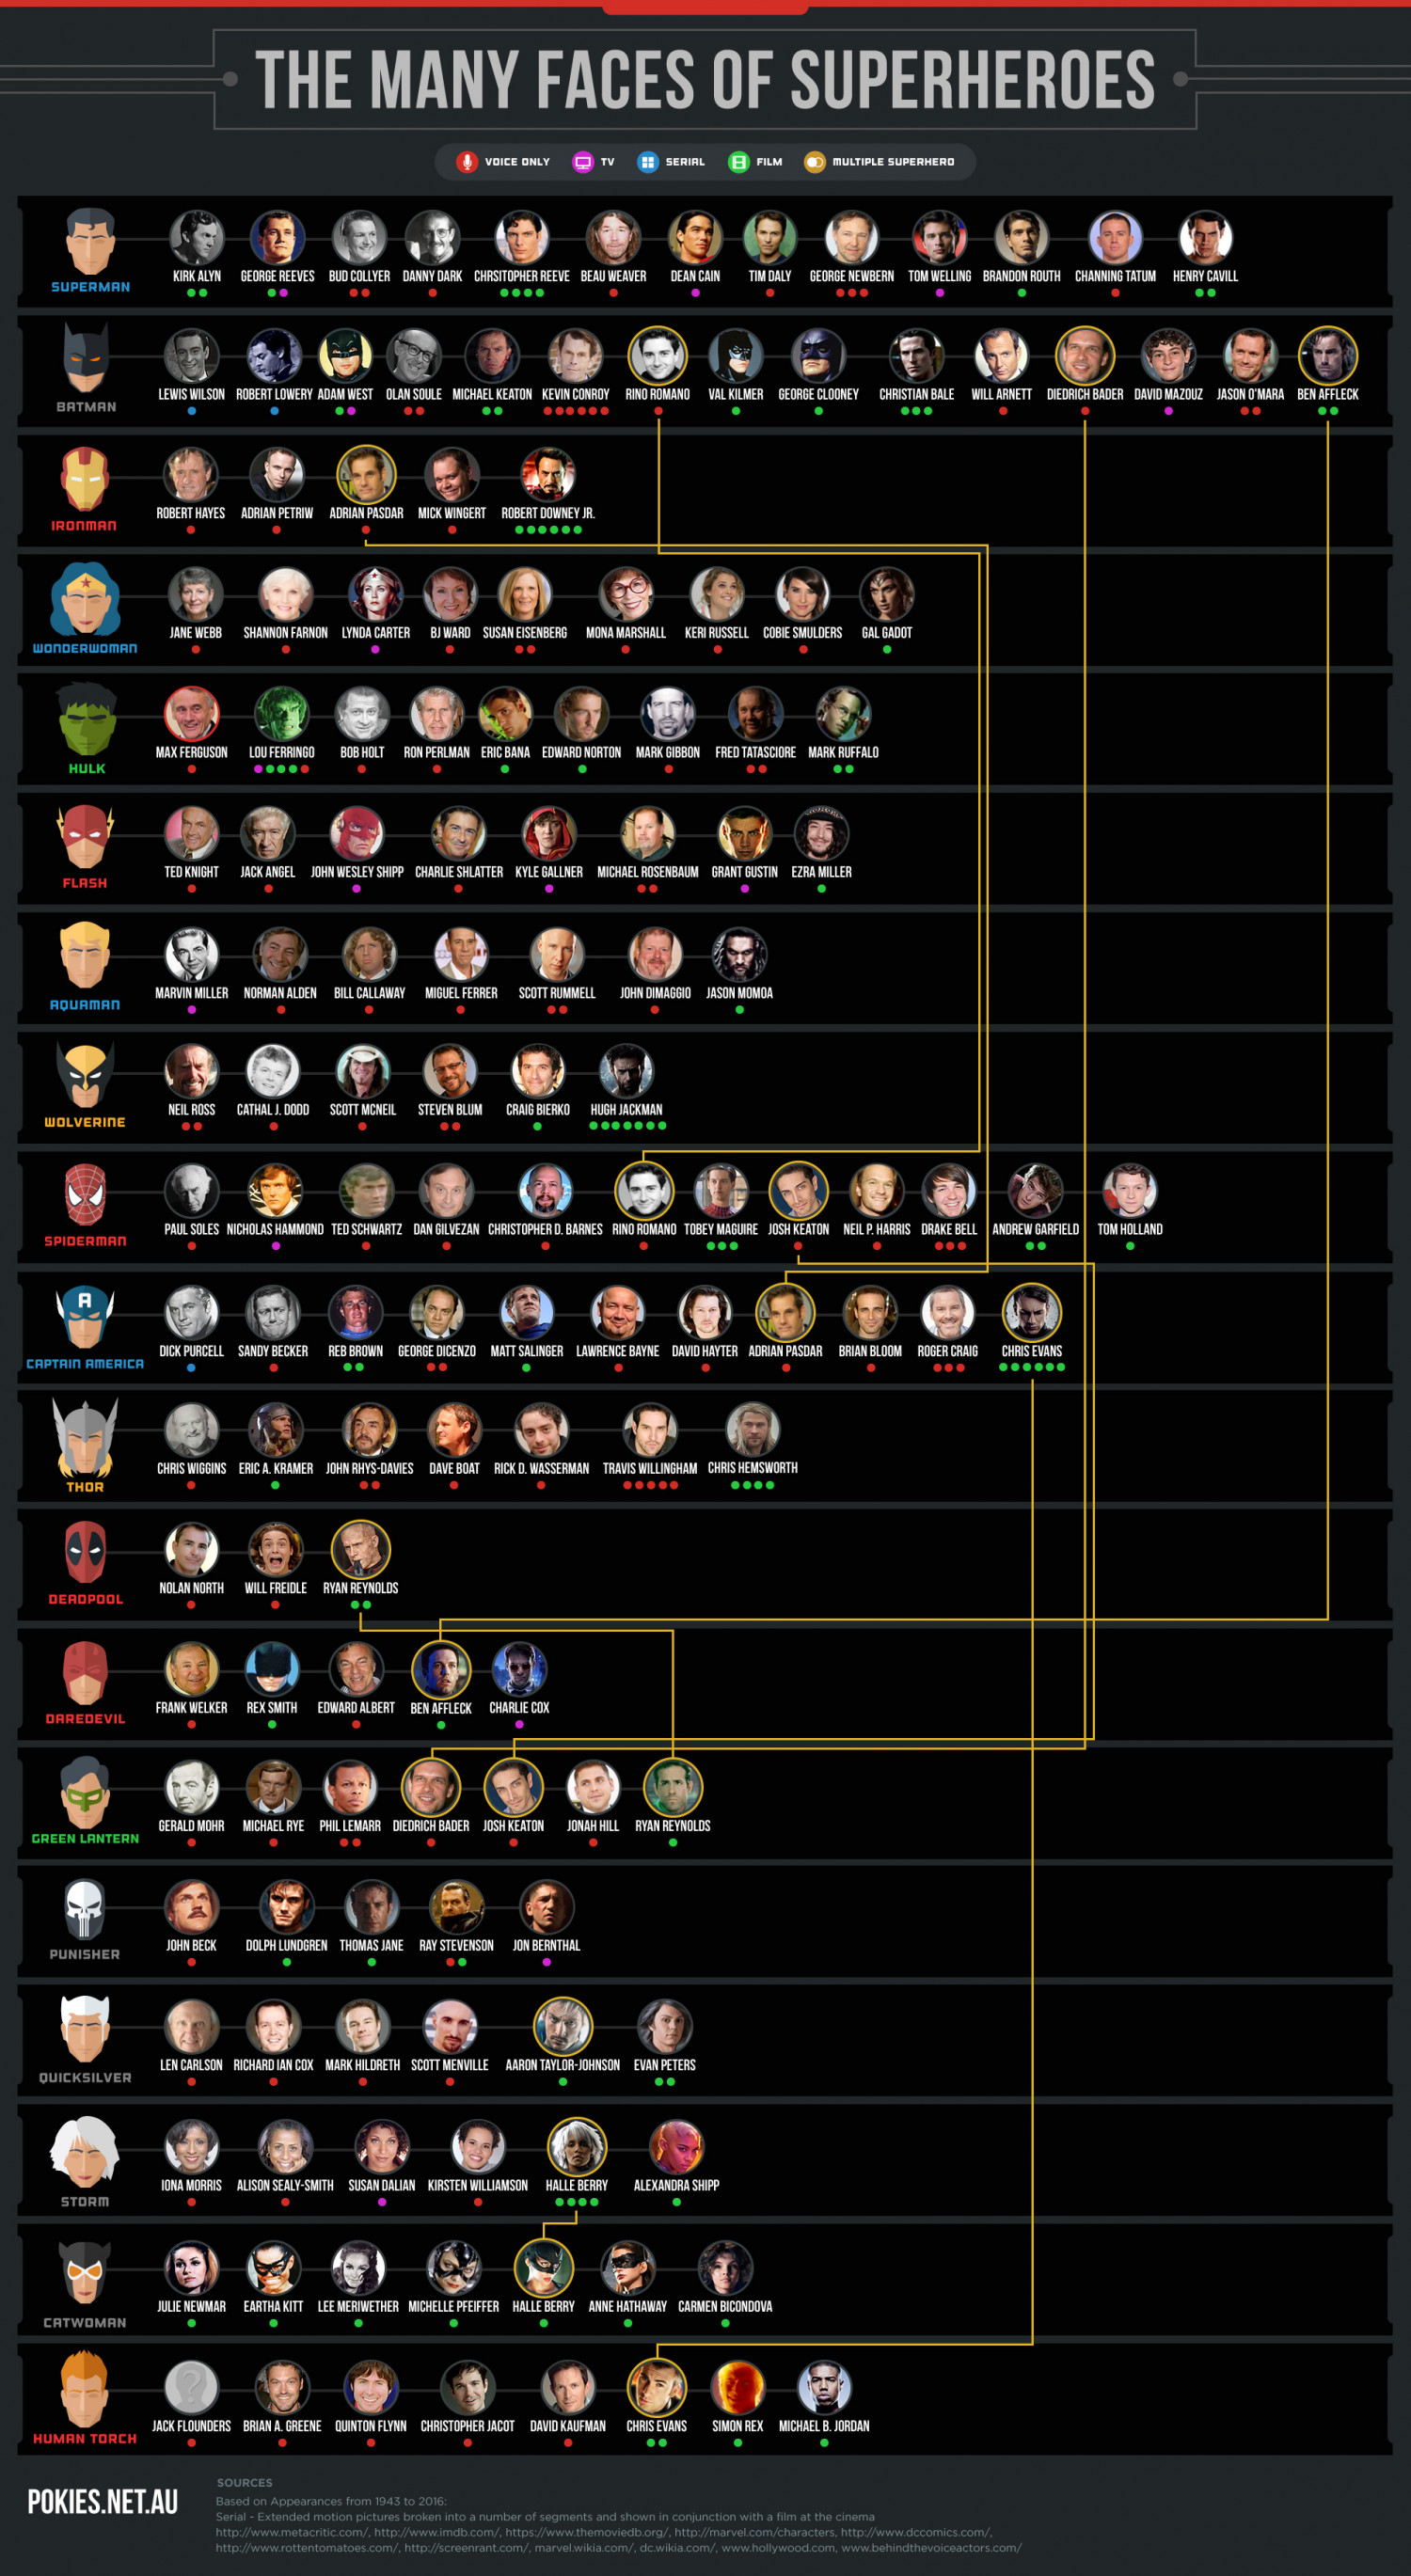 The Many Faces of Superheroes  Infographic